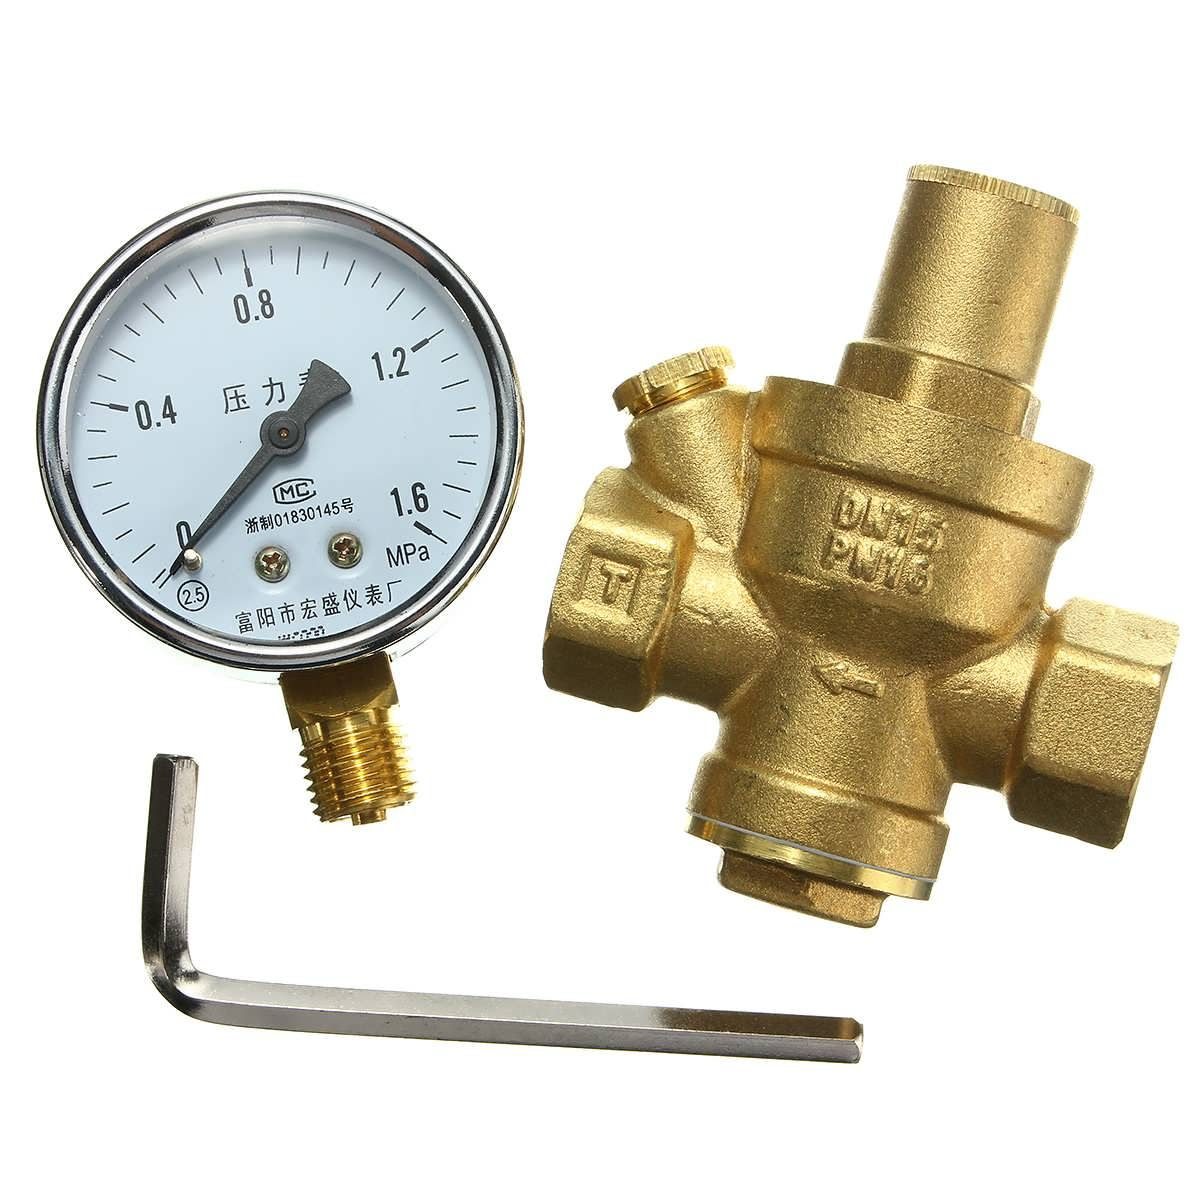 Dn15 1 2inch Bspp Brass Water Pressure Reducing Valve With Gauge Flow Adjustable Worldwide Delivery Original Best Quality Prod Valve Cool Things To Buy Brass